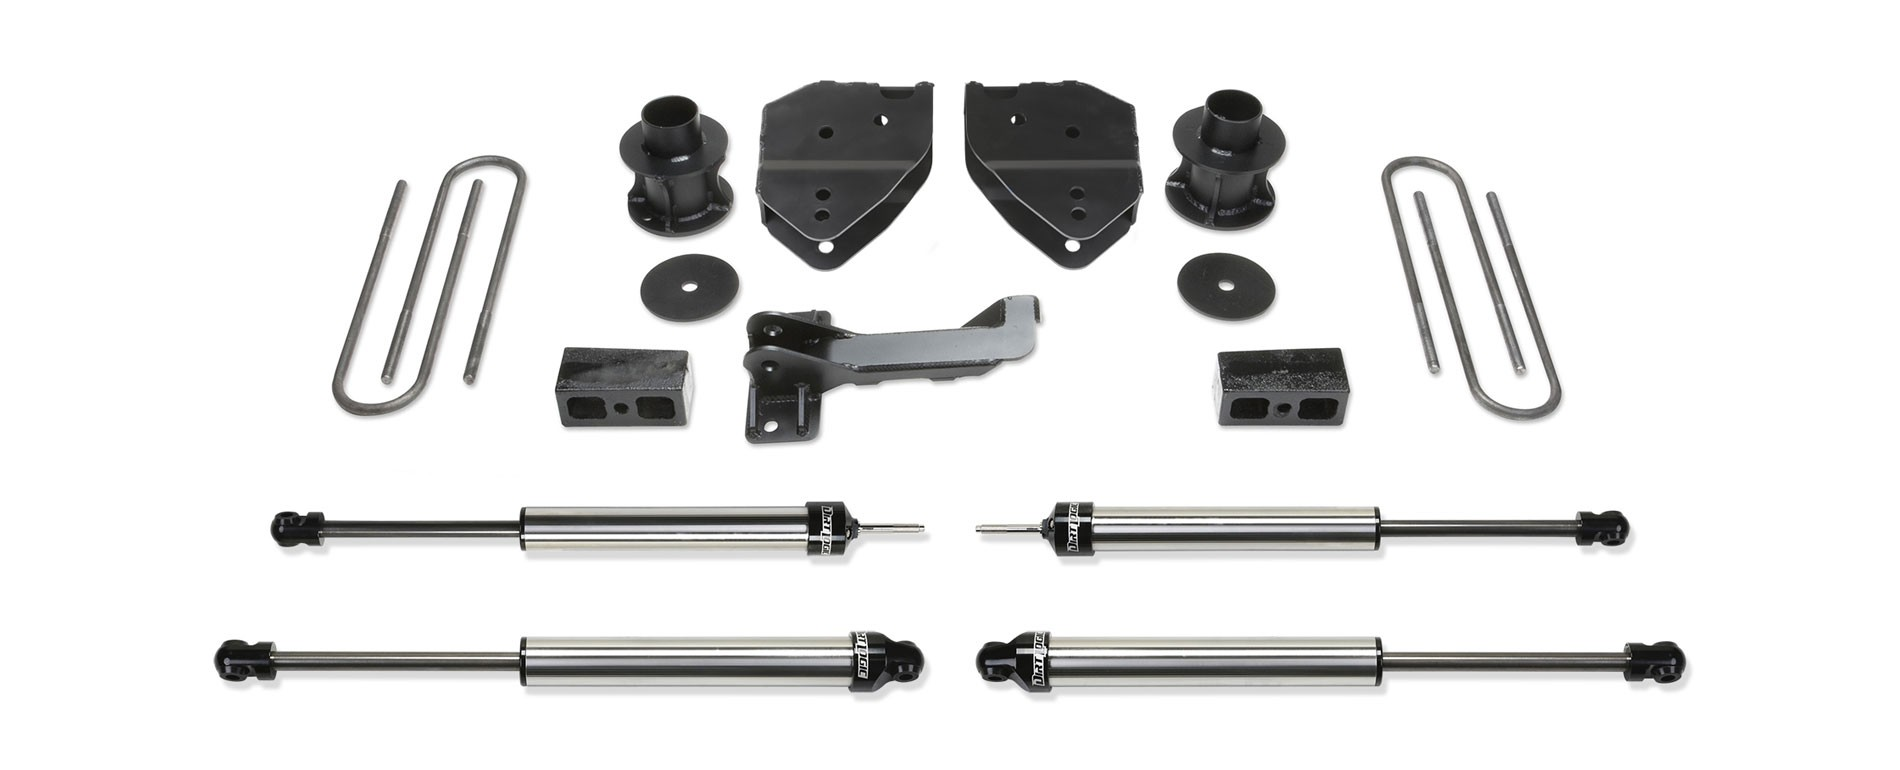 "FABTECH- 4"" Budget System -2017 Ford F250/F350 4WD"